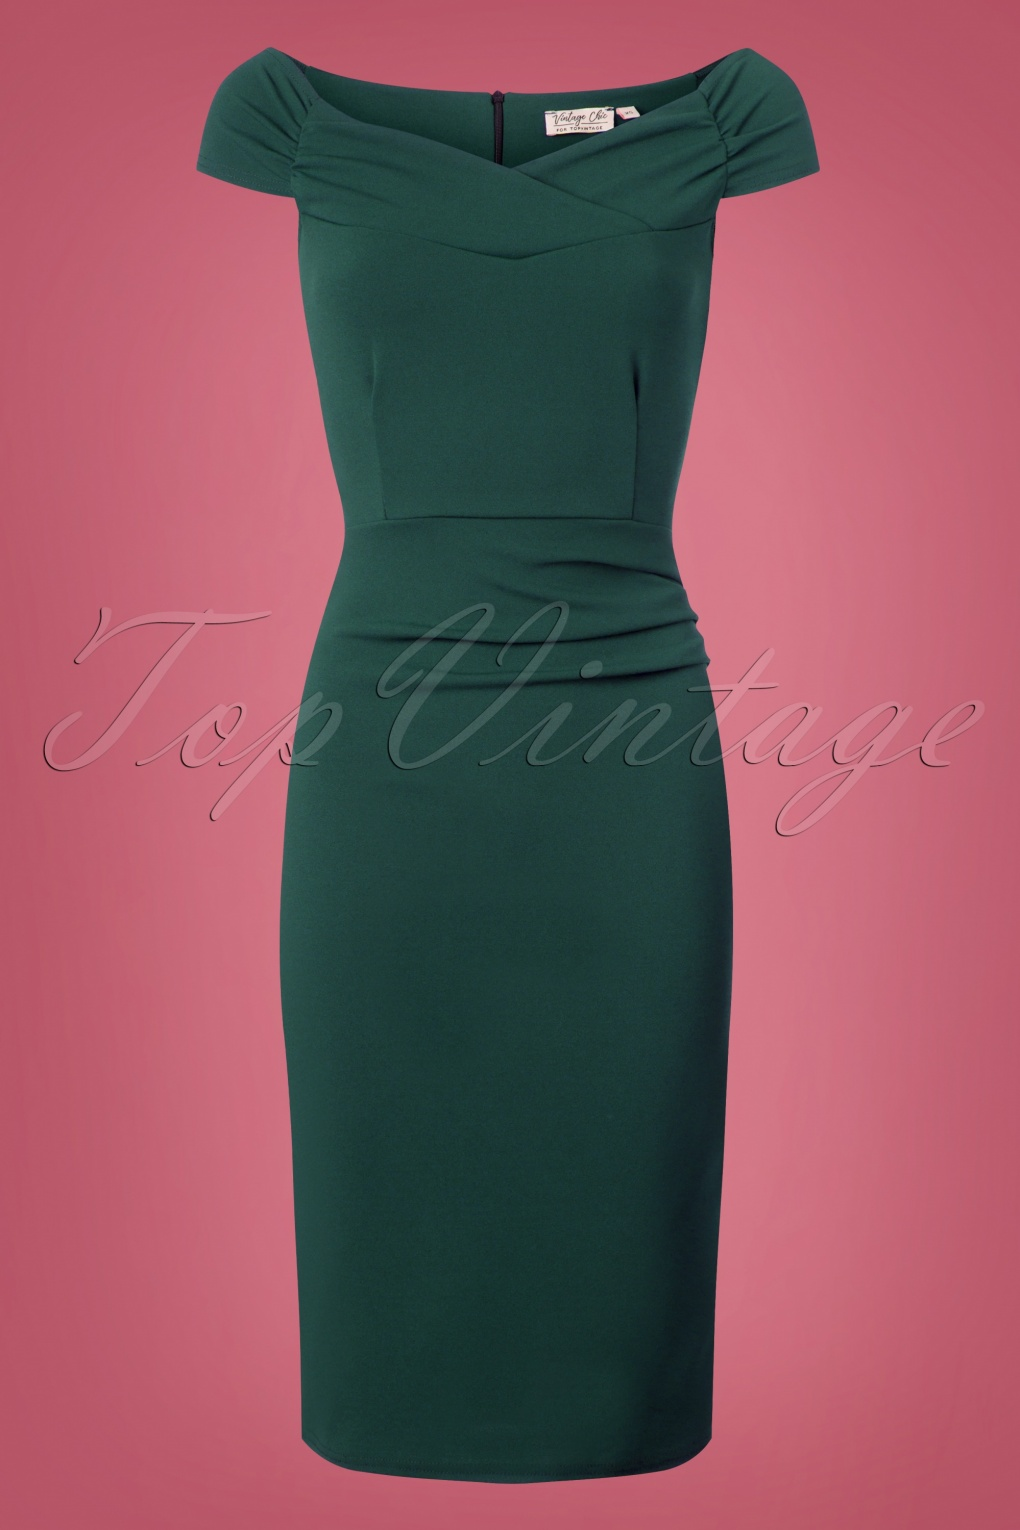 Pin Up Dresses | Pinup Clothing & Fashion 50s Cynthia Pencil Dress in Forest Green £44.74 AT vintagedancer.com